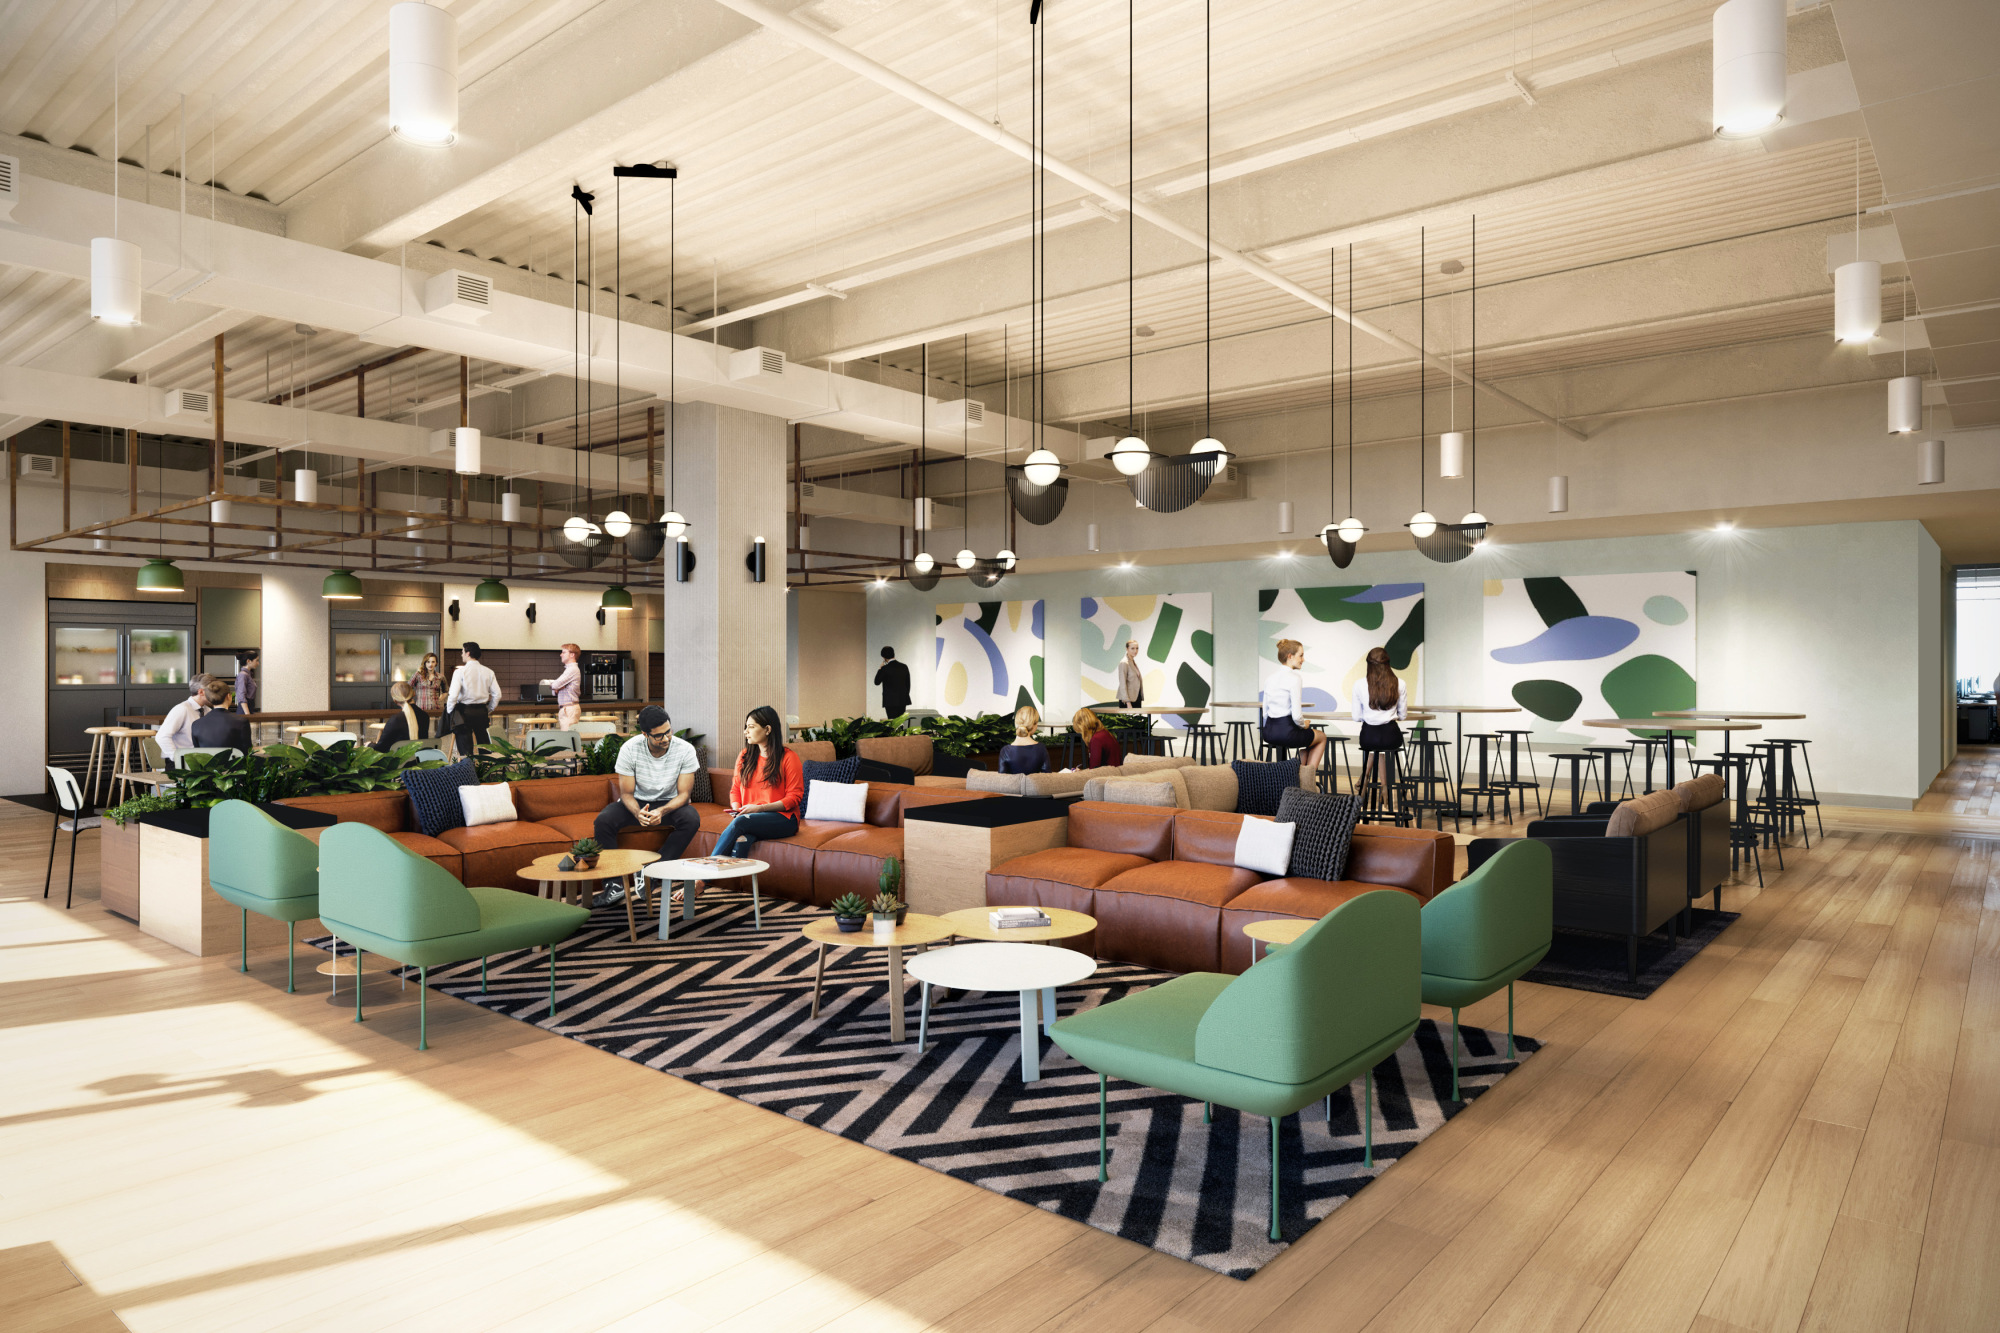 Wework will renovate ubs office in its biggest design deal bloomberg